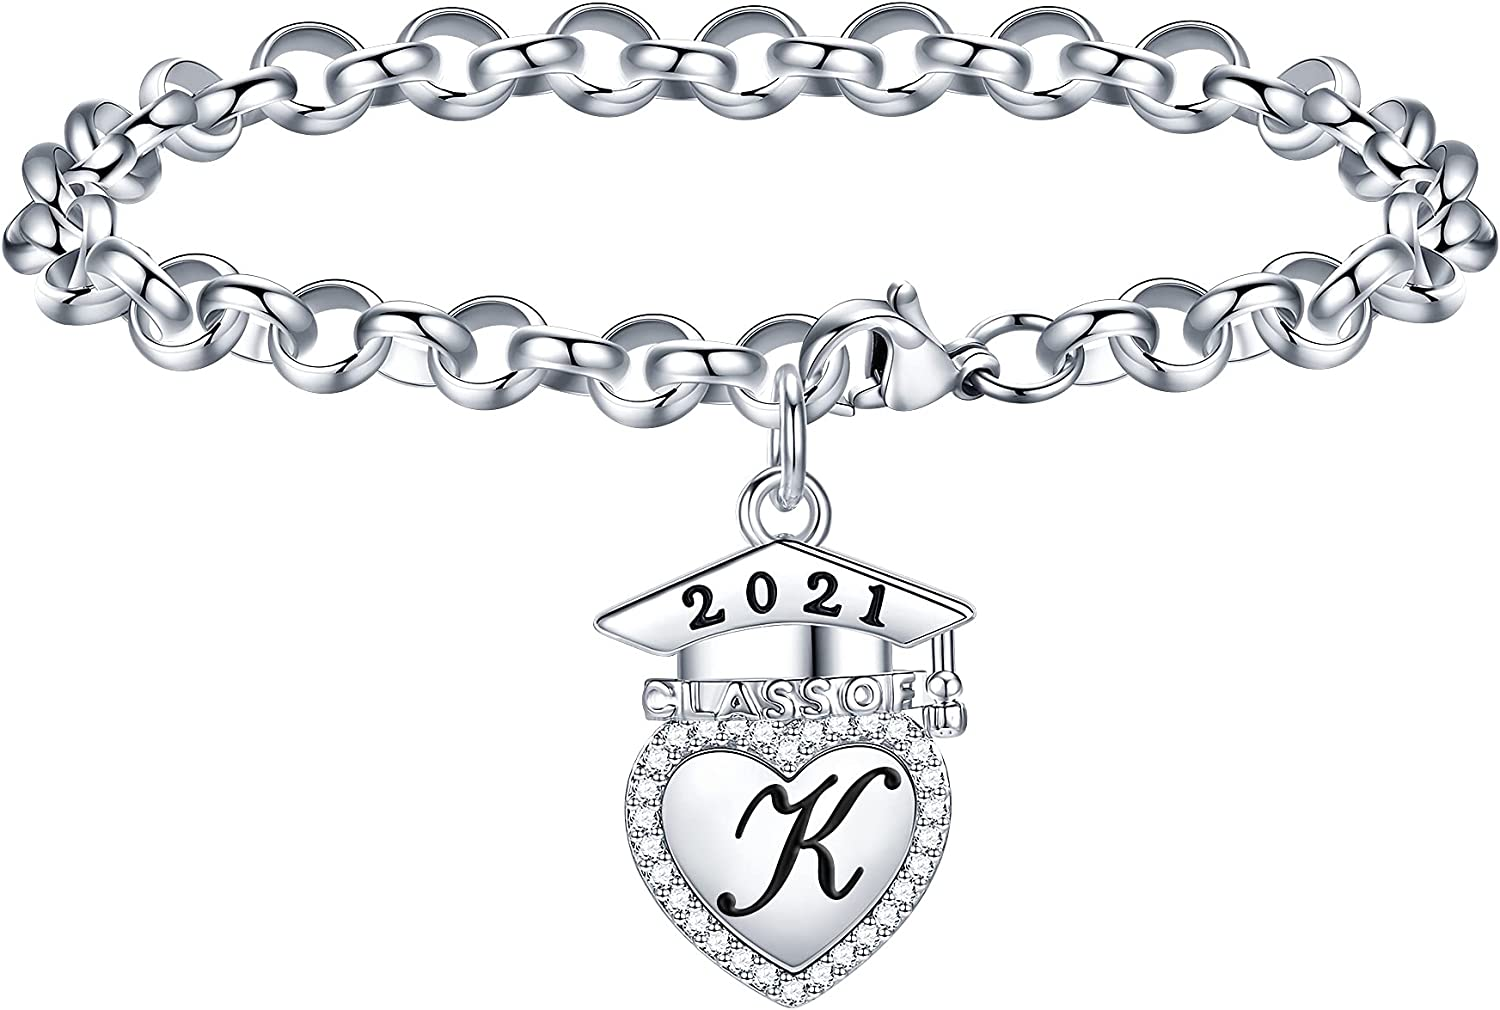 IEFWELL Graduation Gifts for Girl Bracelet, Charm Bracelet for Women 2021 Graduation Gifts Bracelet Cute College Graduation Gifts for Women Graduation Cap Bracelet for High School Graduation Gifts